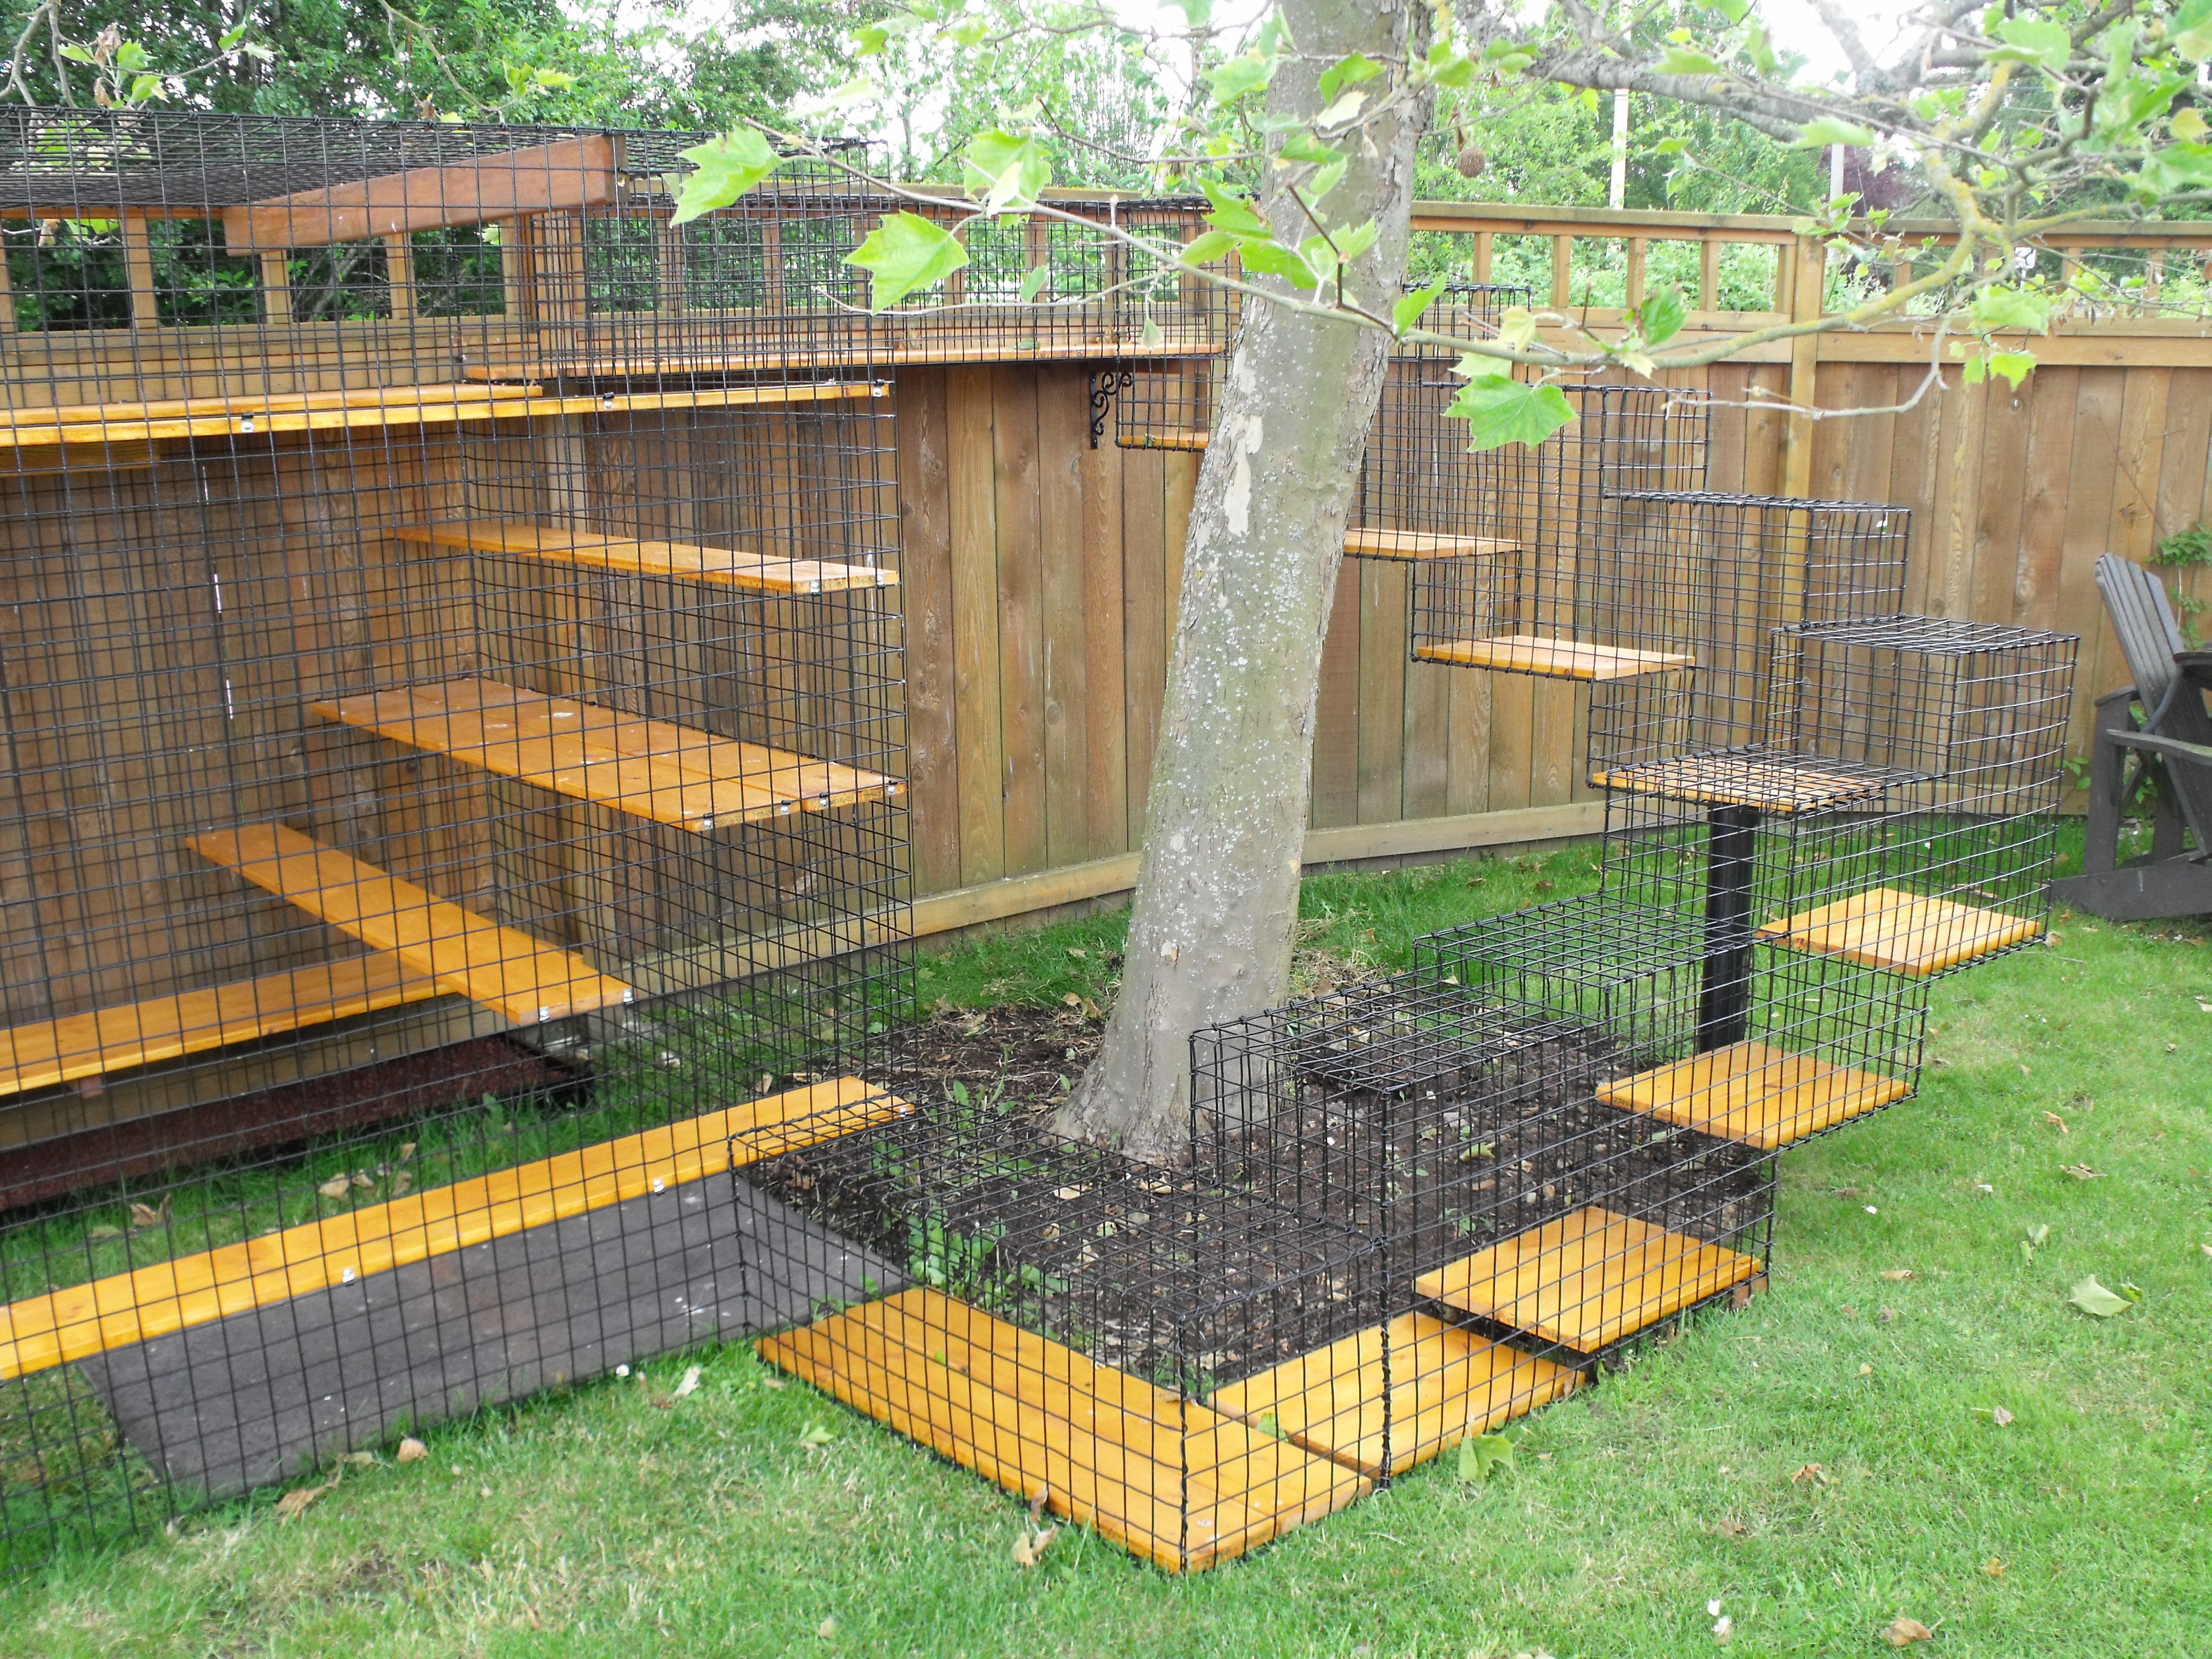 Backyard Enclosures For Cats : Cat enclosures are becoming more popular and provide a safe?for both